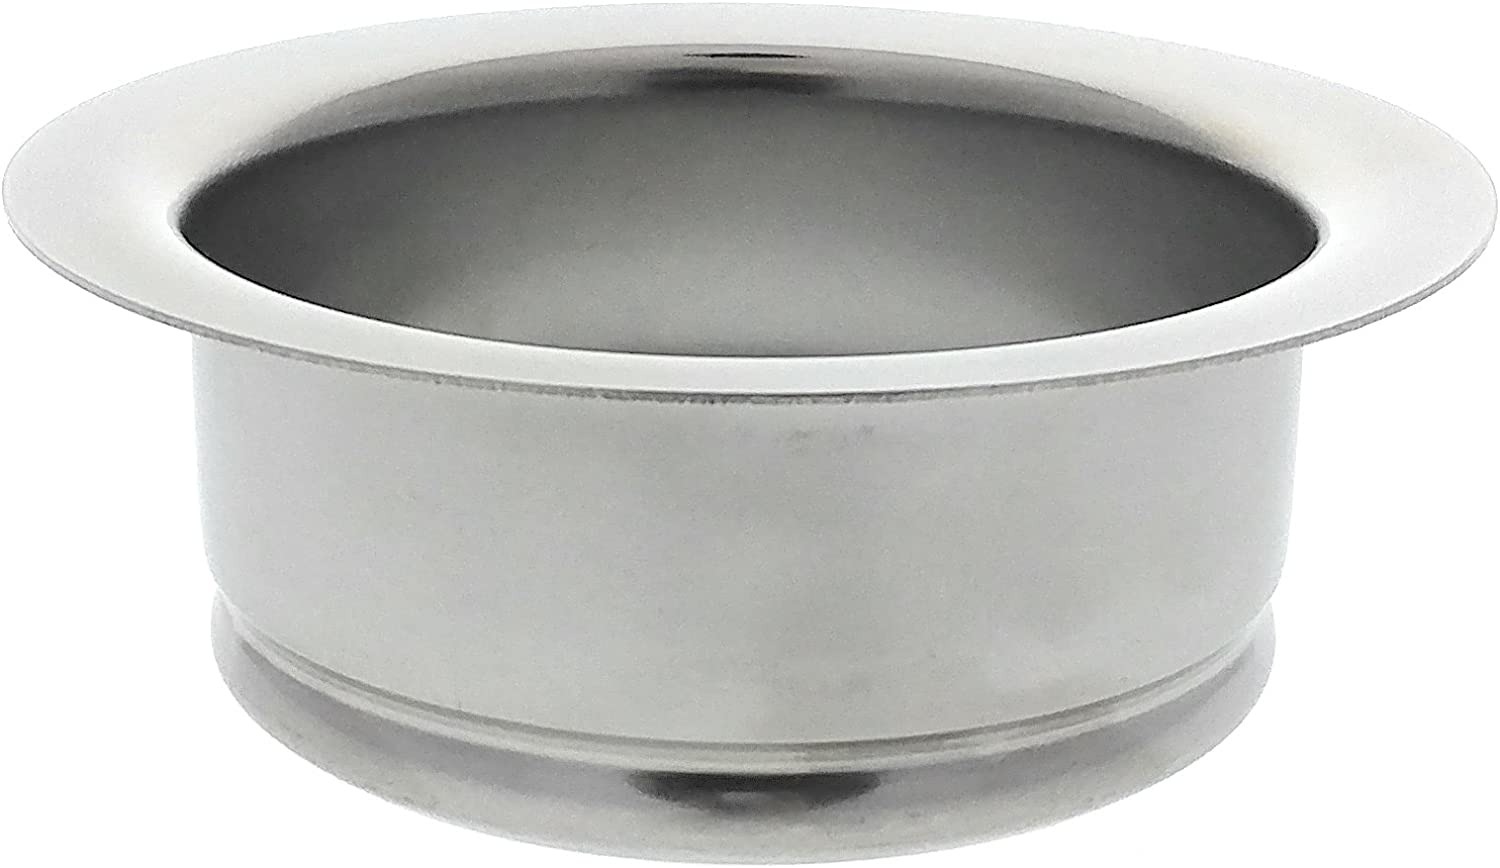 Kitchen Sink Flange, Stainless Steel Flange For Insinkerator Garbage Disposals And Other Disposers That Use A 3 Bolt Mount By Essential Values